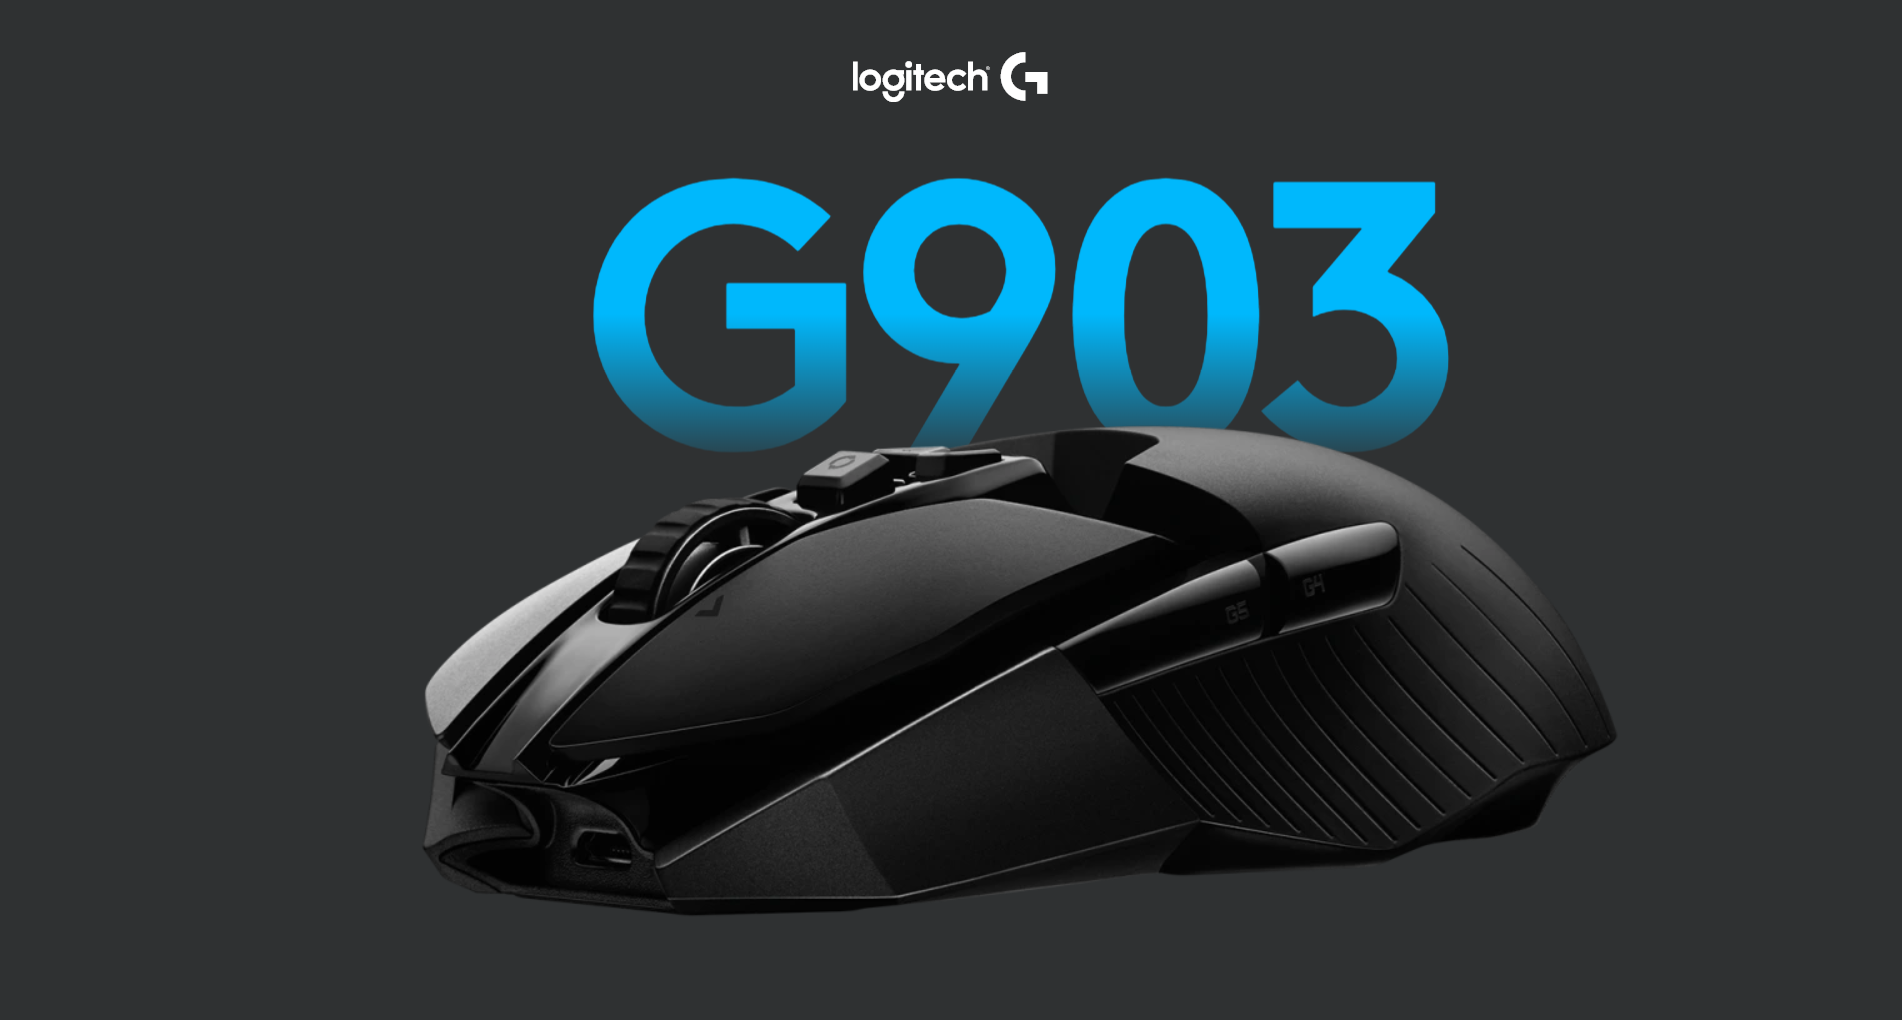 Logitech G903 Lightspeed Wireless Gaming Mouse Banner